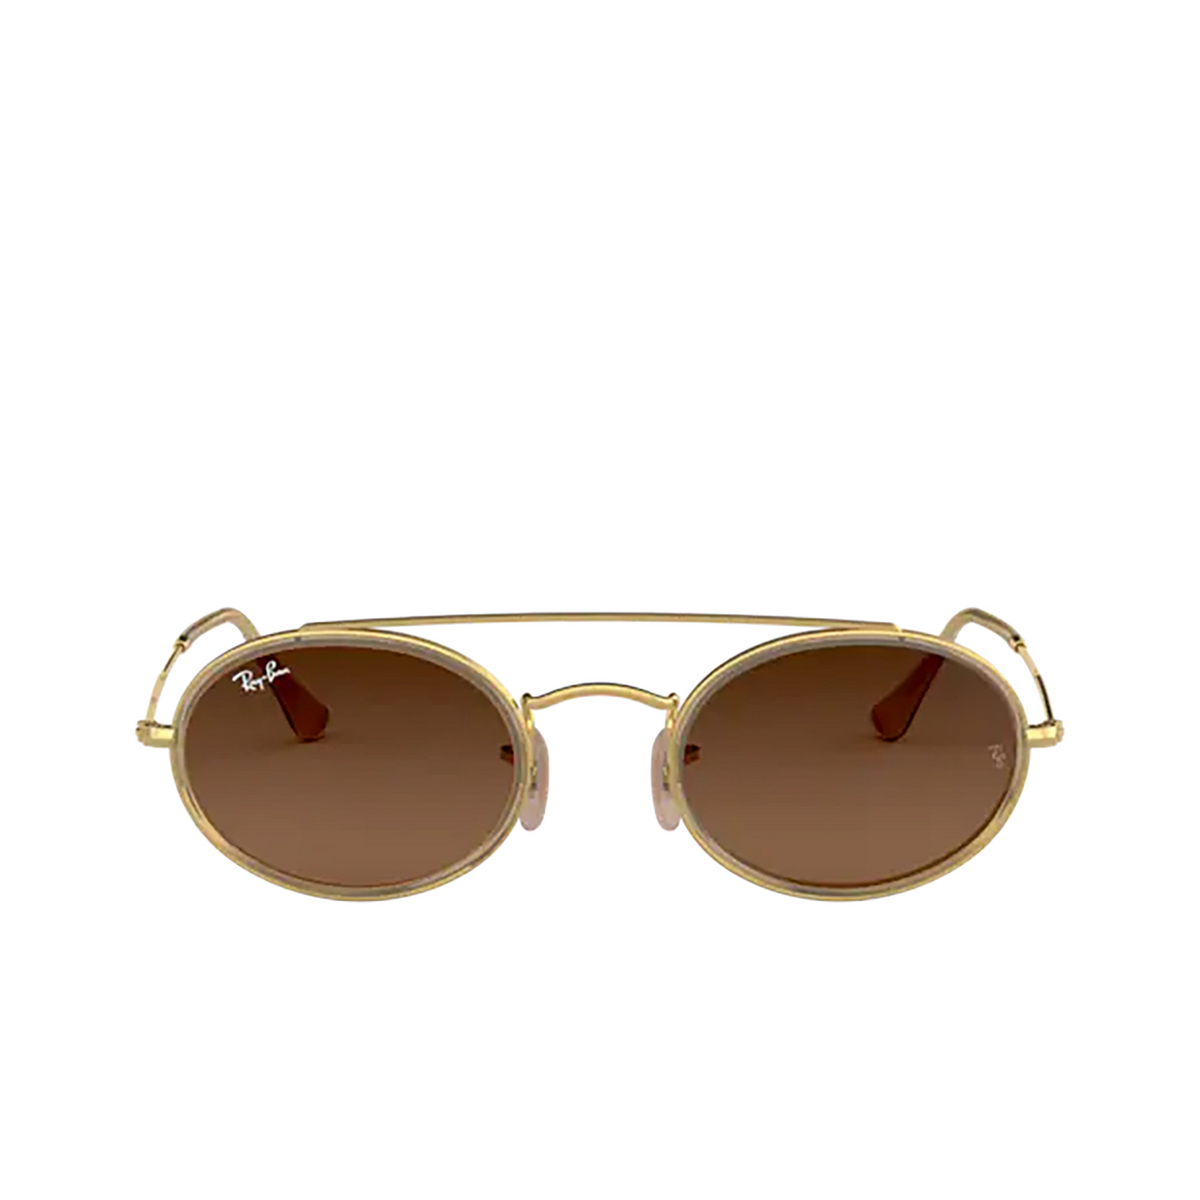 Ray-Ban® Oval Sunglasses: RB3847N color Arista 912443 - front view.